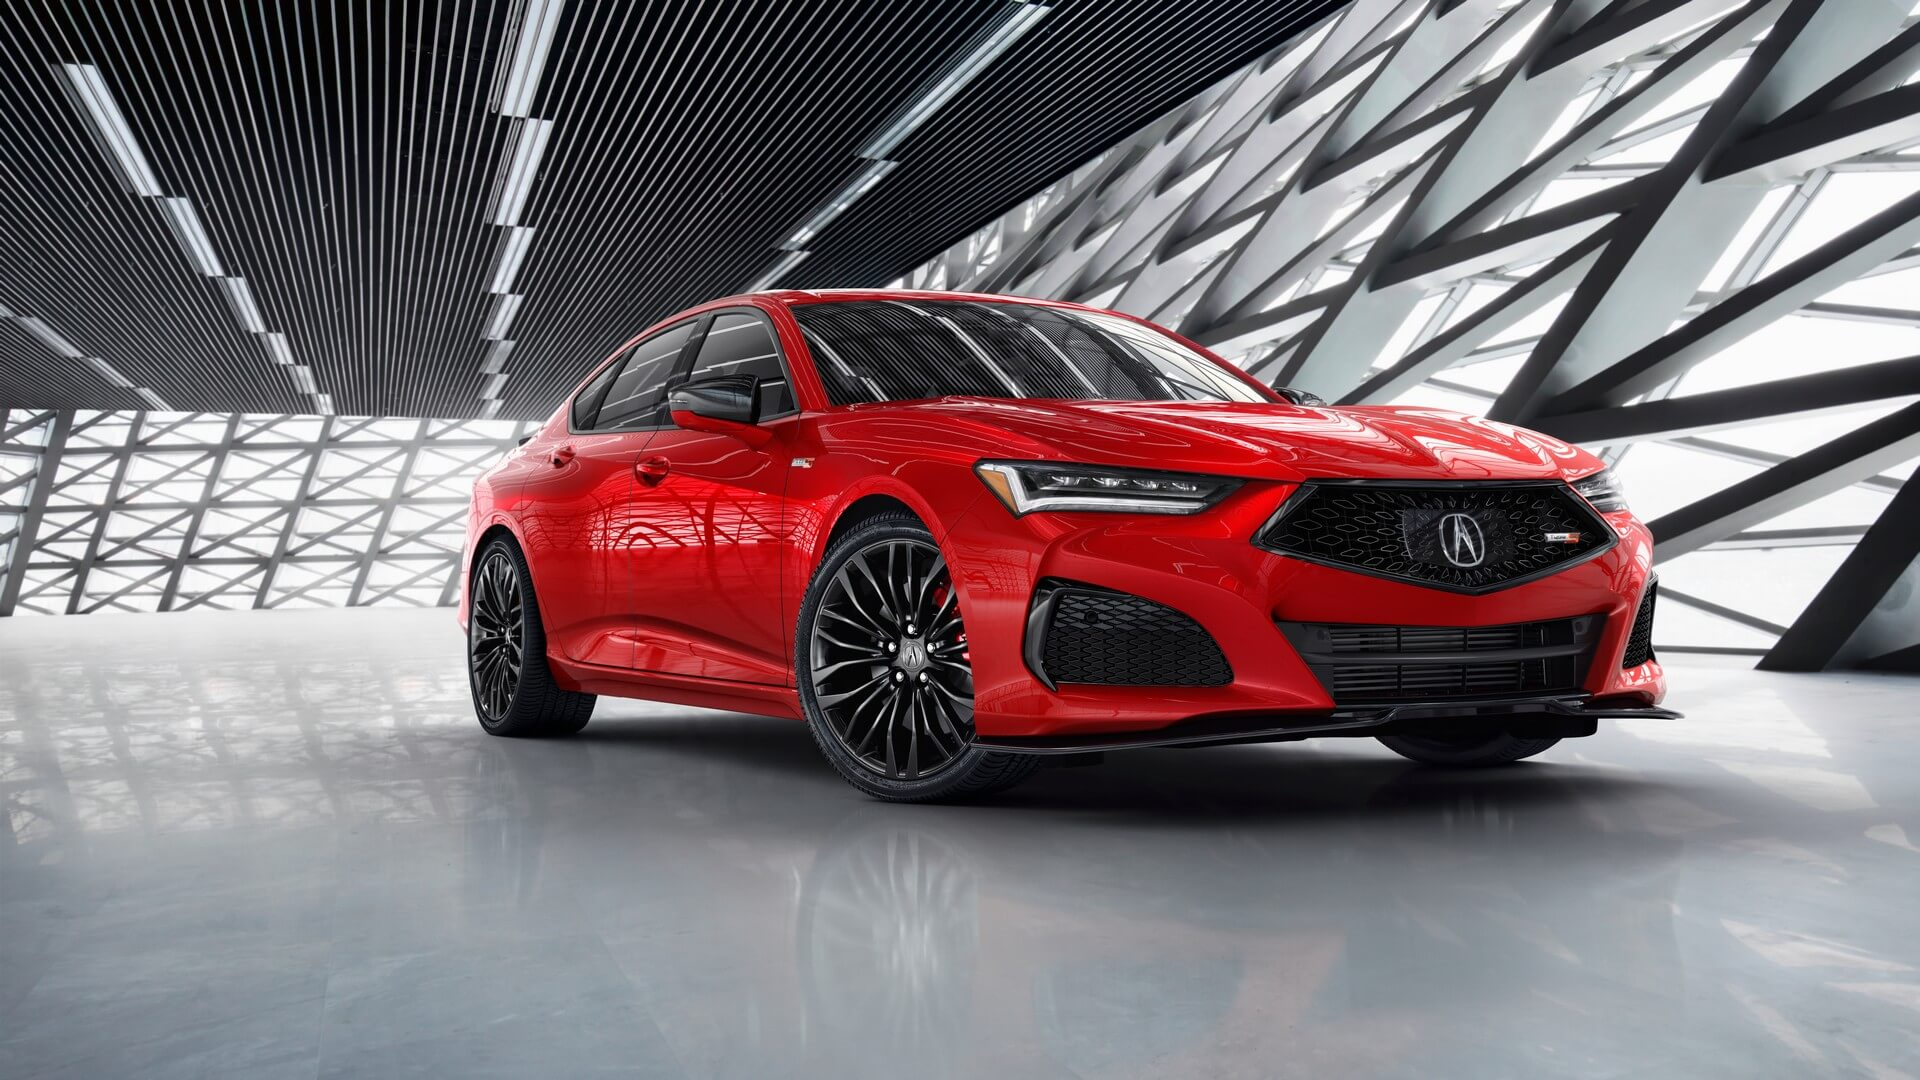 2021 Acura TLX Type S And Audi S4 Specs Compared 1920x1080